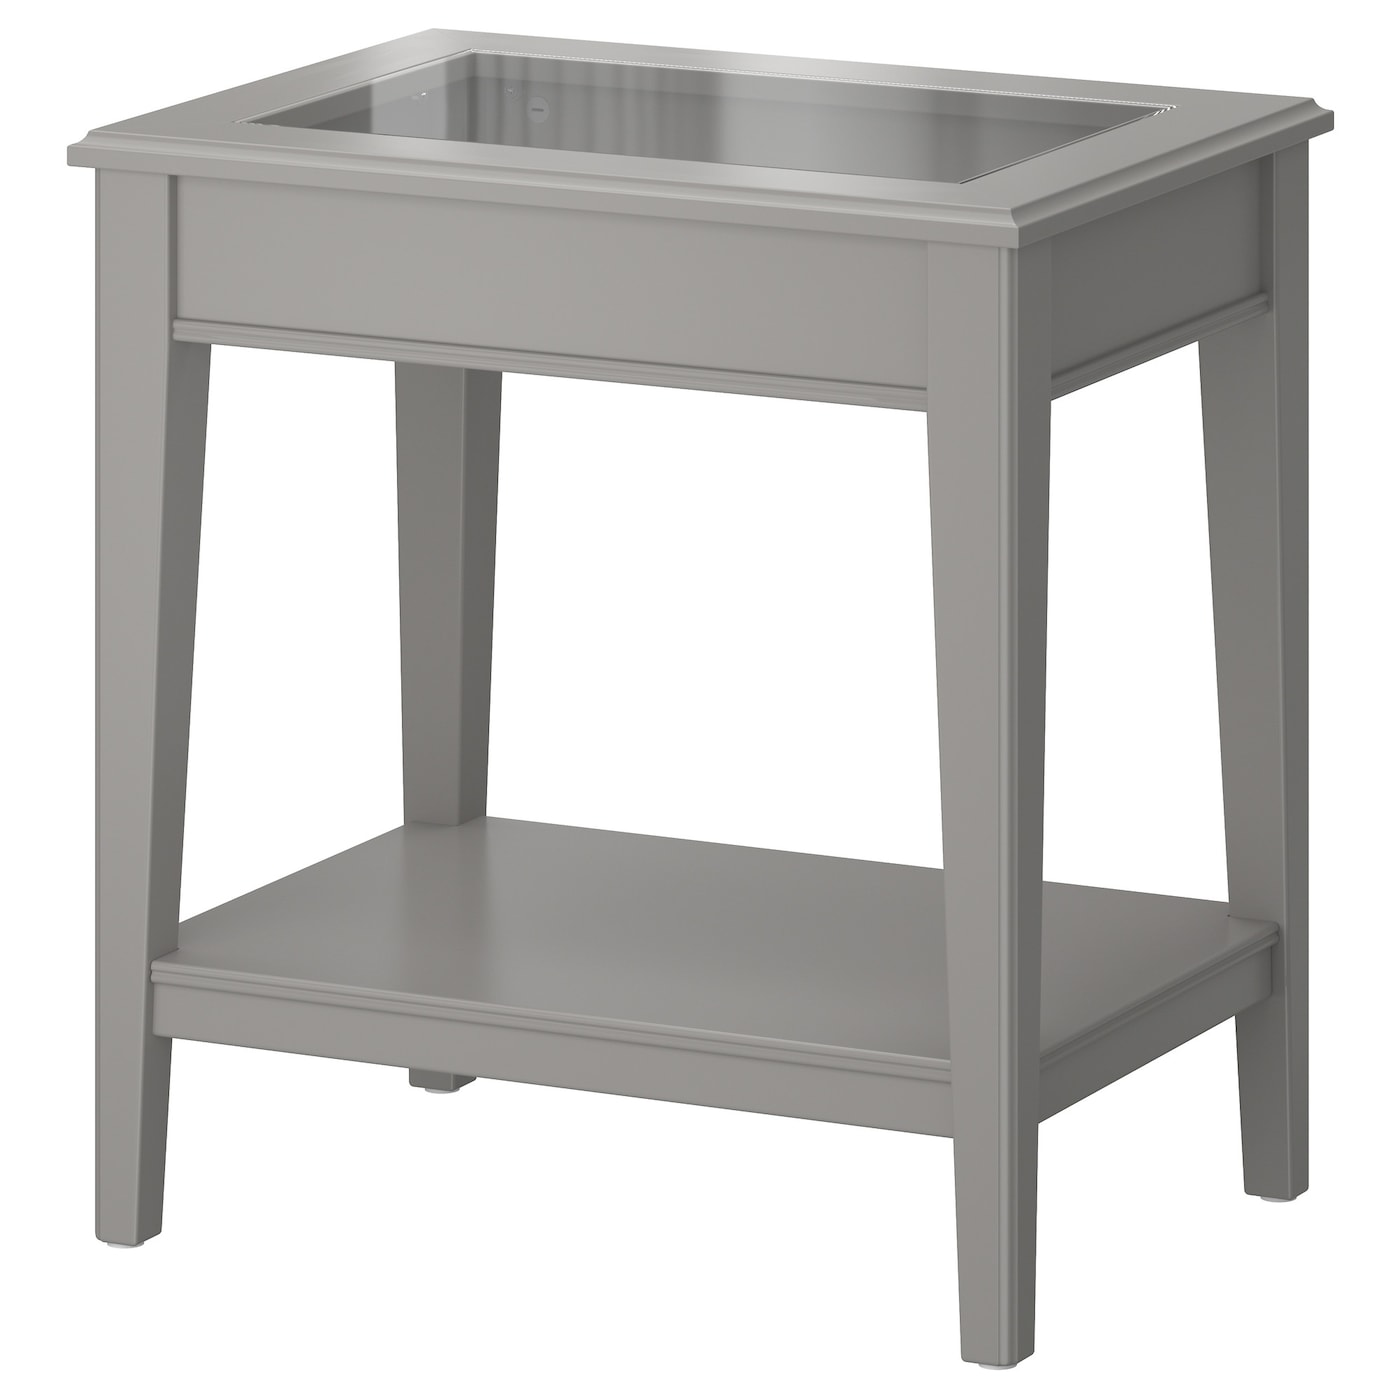 Liatorp side table grey glass 57x40 cm ikea for Ikea glass table tops